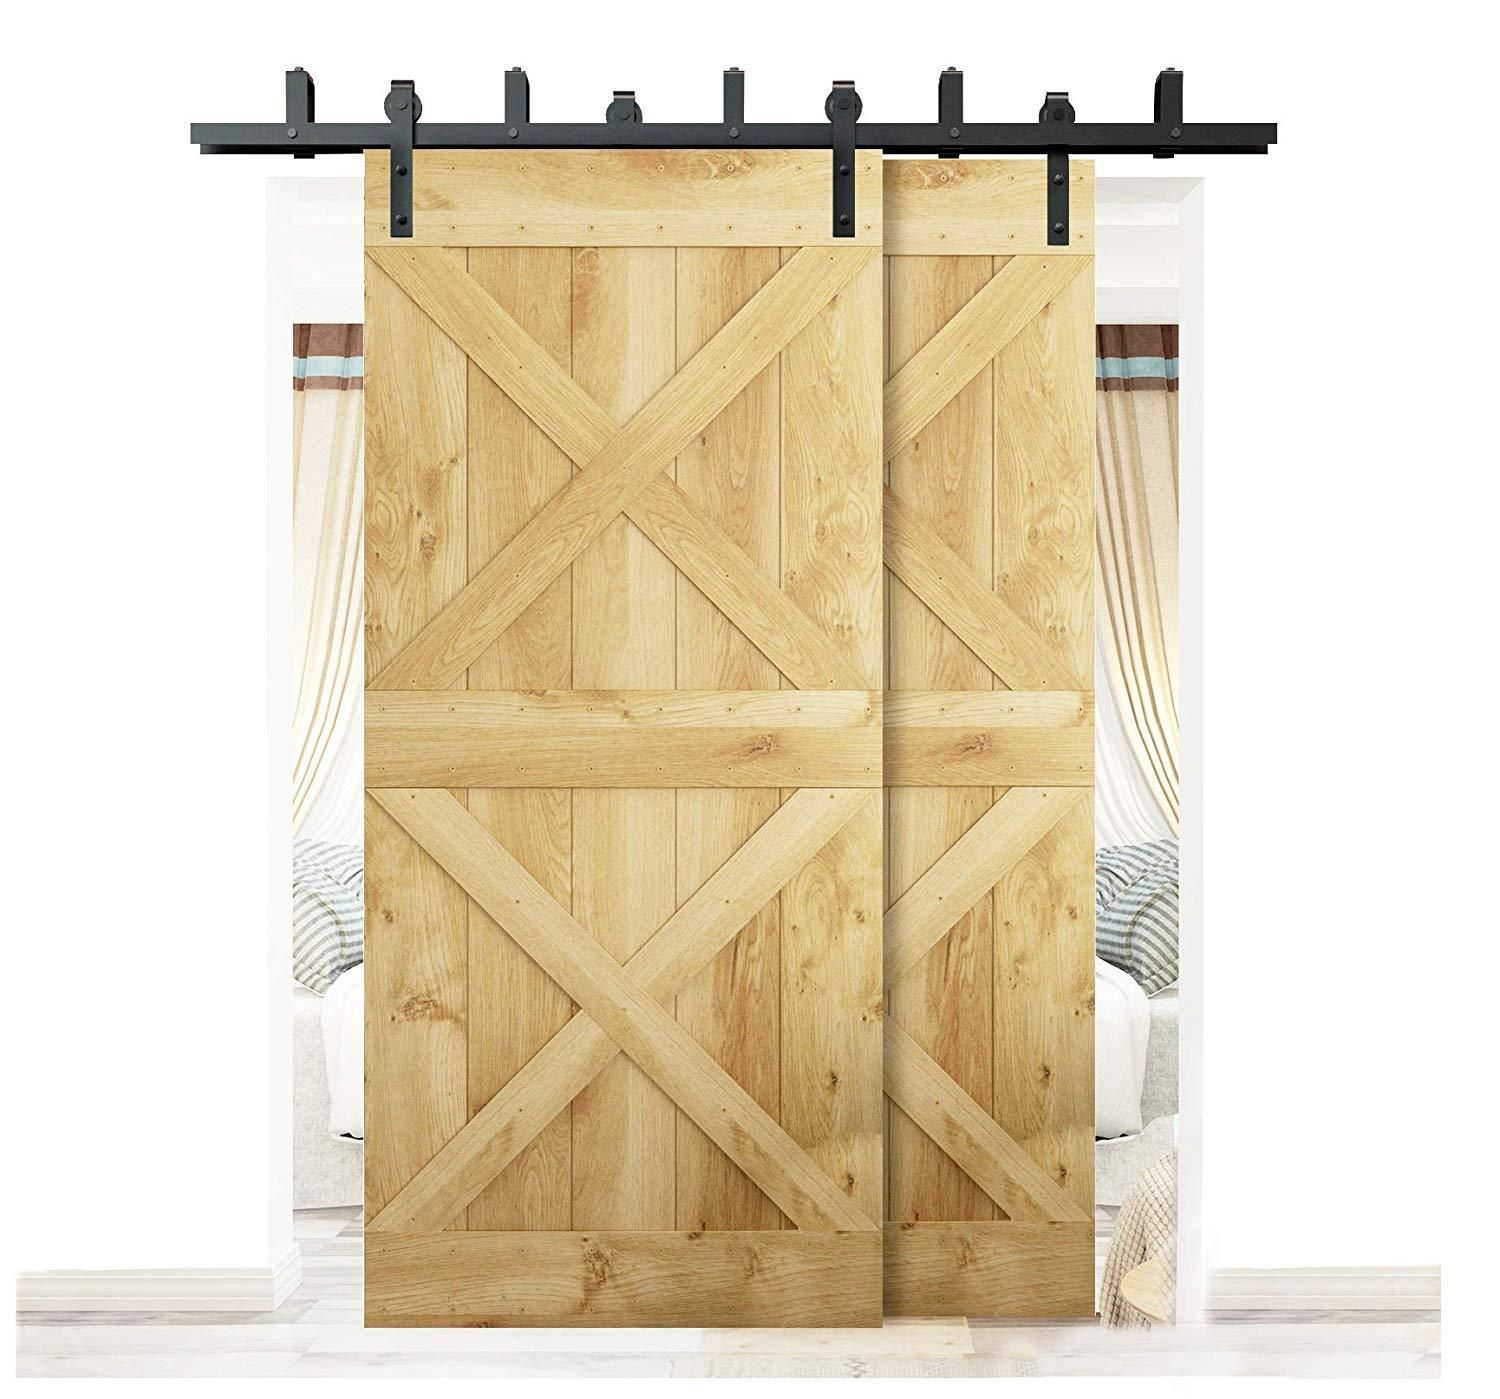 Details About Diyhd 5ft 10ft Rustic Black Bypass Double Sliding Barn Door Hardware Bypass Kit Double Sliding Barn Doors Door Hardware Interior Sliding Doors Interior